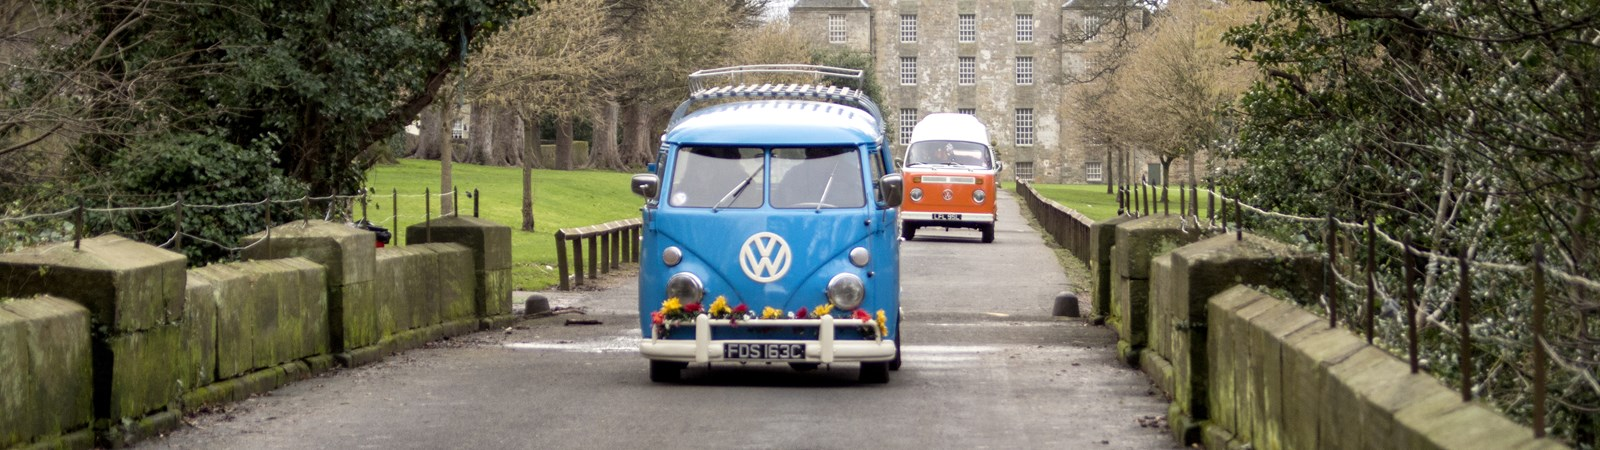 Vintage VW Campers, classic VW campervanhire|Self Catering accommodation scotland